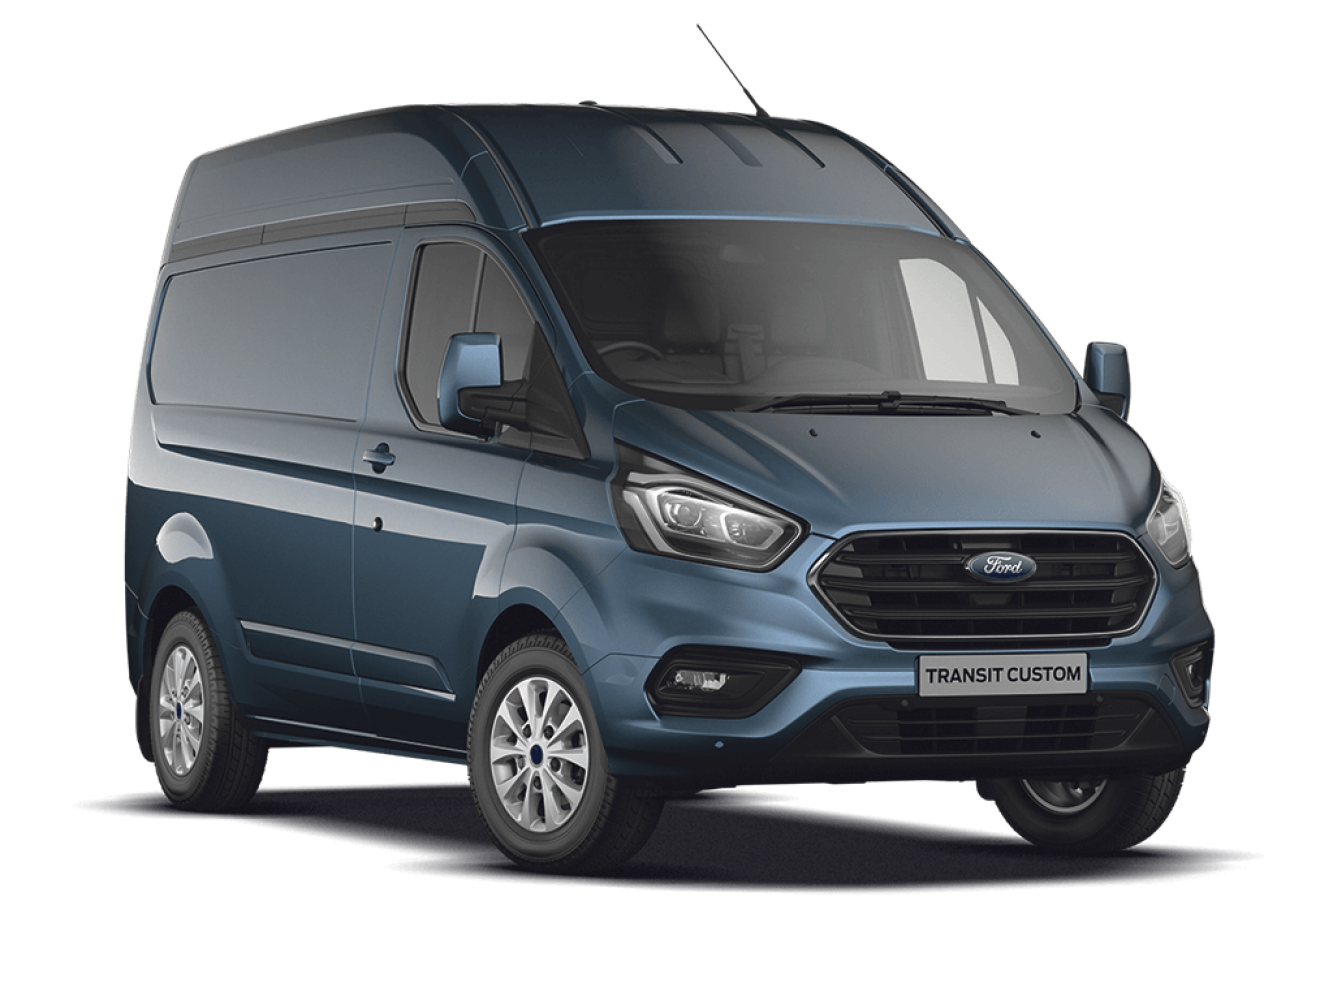 new ford transit custom 300 l1 diesel fwd 2 0 tdci 130ps high roof limited van auto for sale. Black Bedroom Furniture Sets. Home Design Ideas